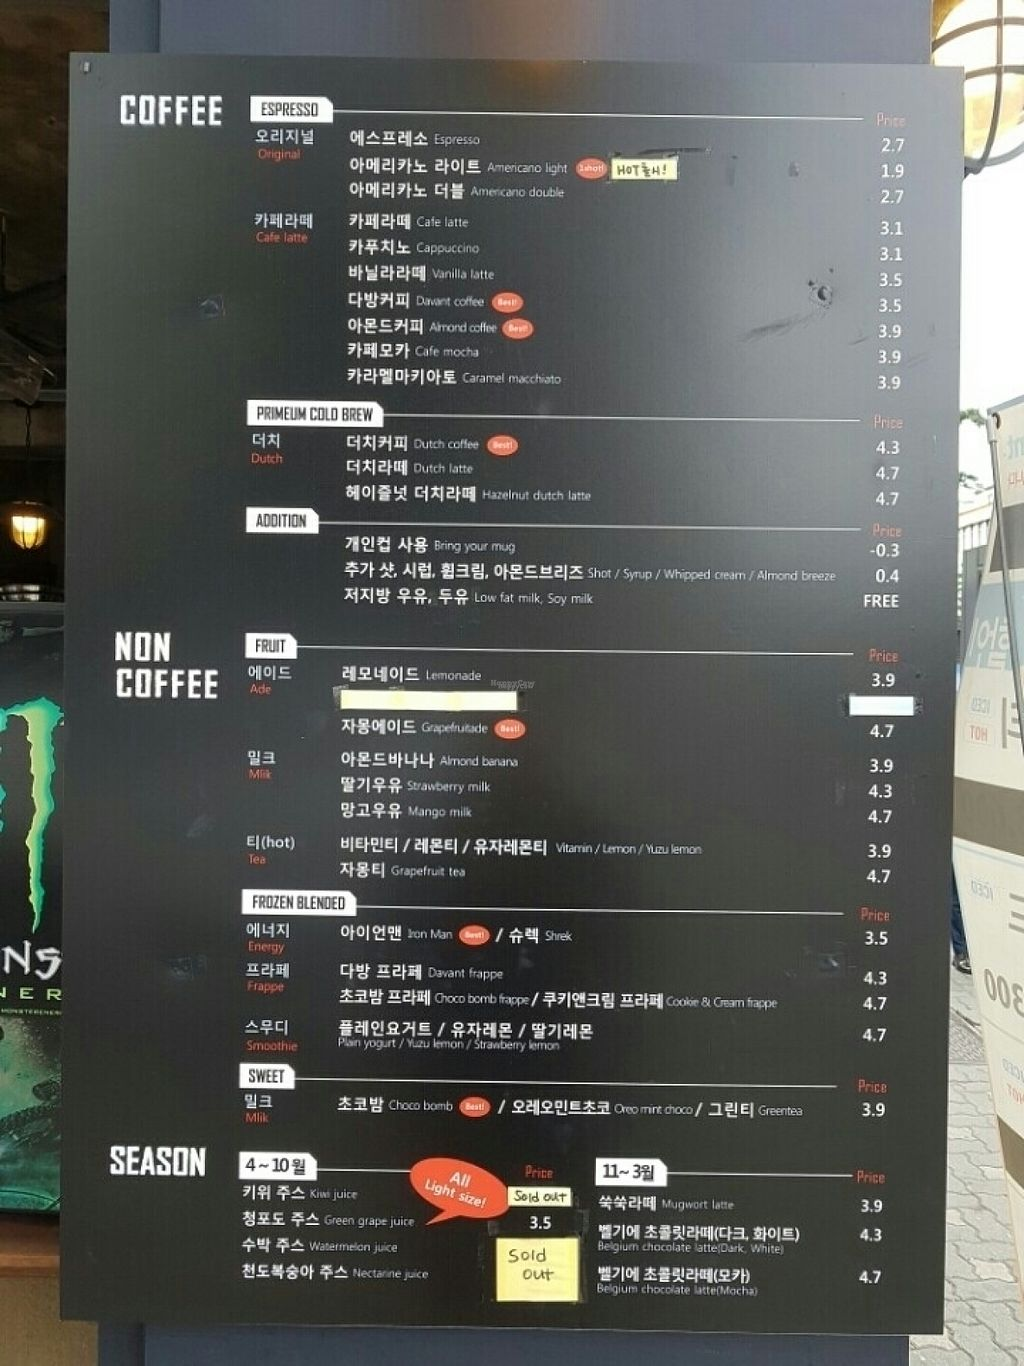 """Photo of Unknown Coffee - 언노운커피  by <a href=""""/members/profile/mfrenette"""">mfrenette</a> <br/>menu <br/> October 30, 2016  - <a href='/contact/abuse/image/82116/185341'>Report</a>"""